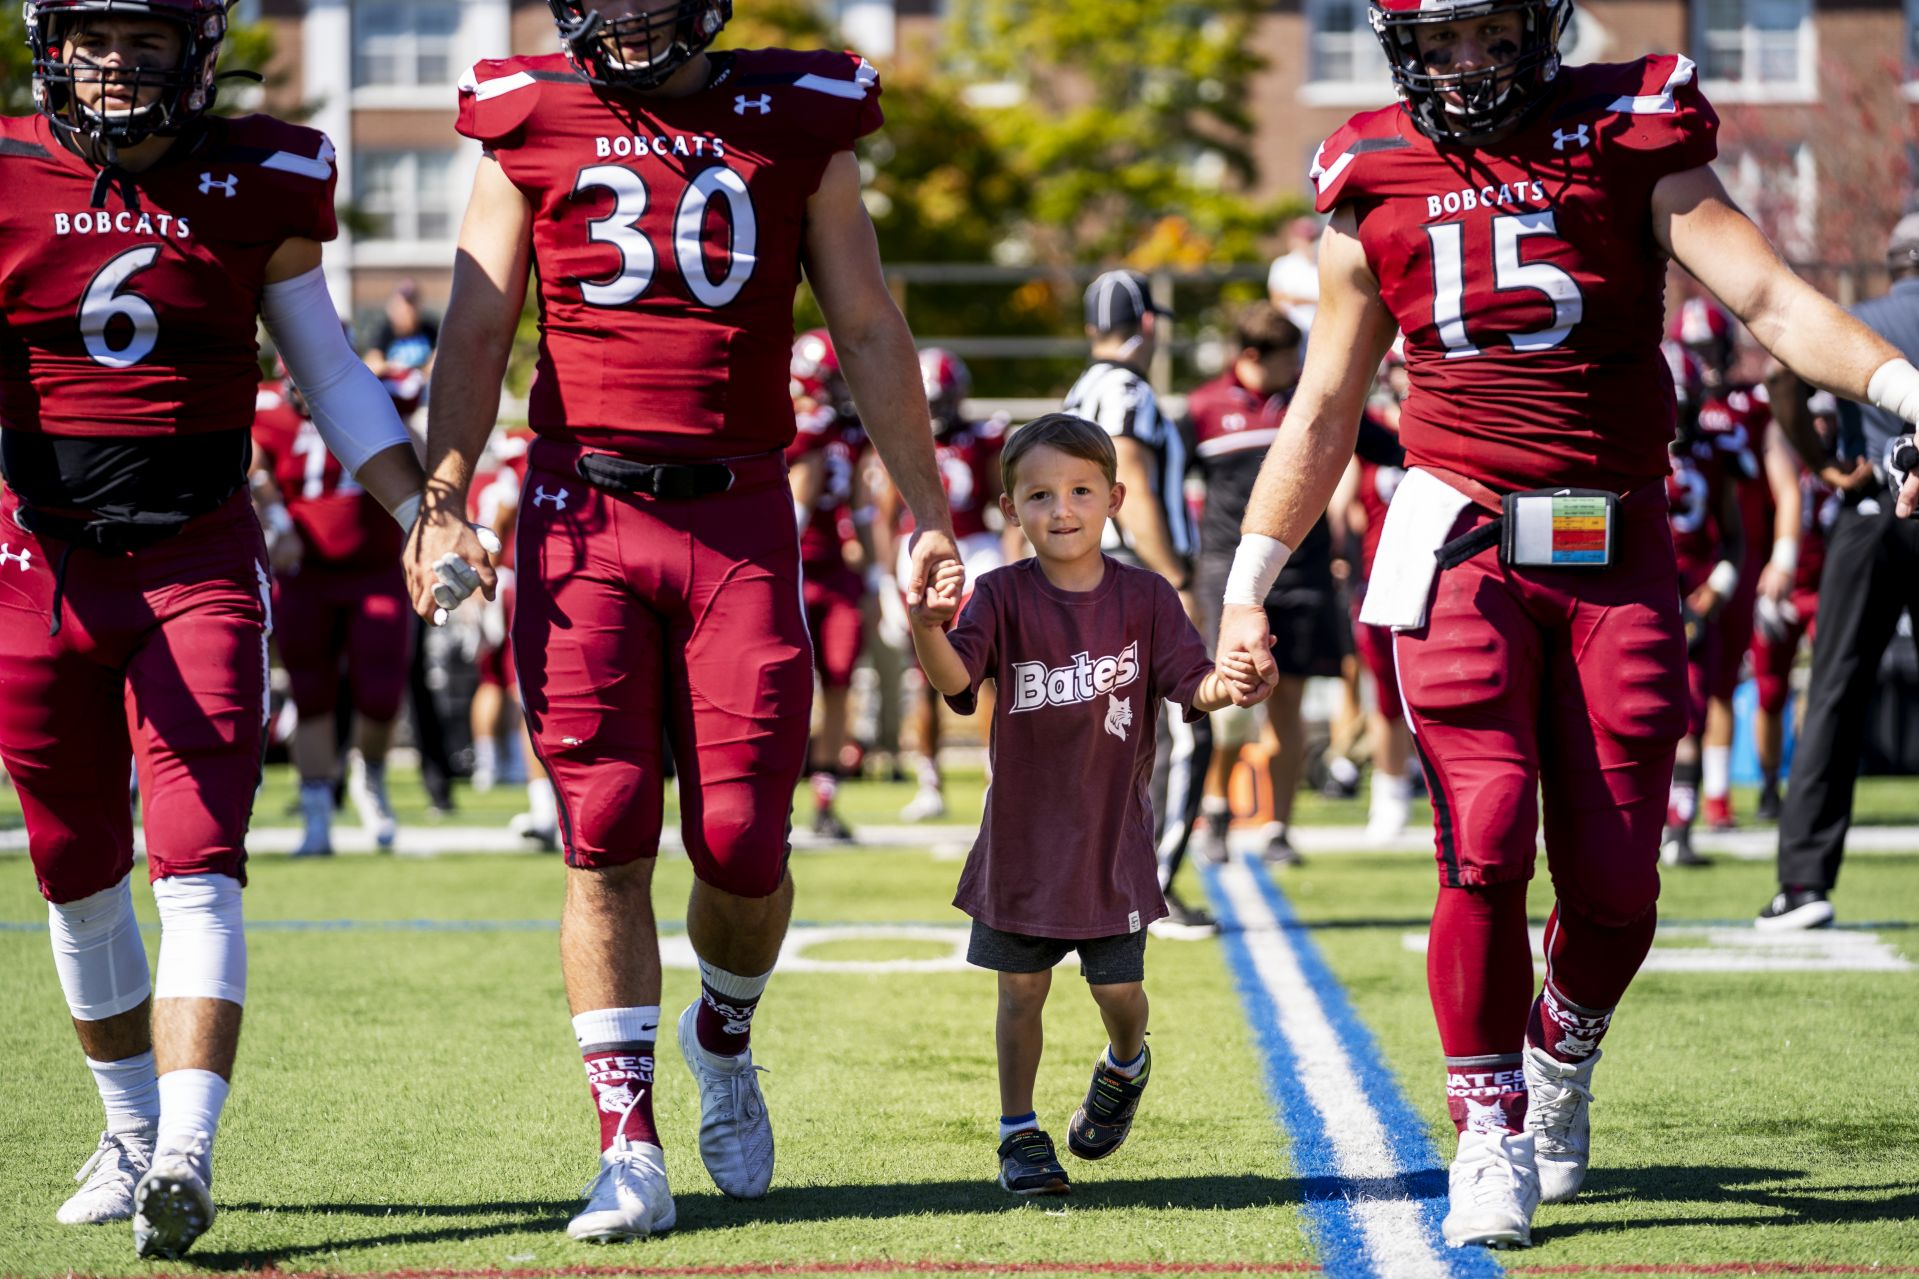 Brayden Austin walks onto Garcelon Field for the coin toss vs. Middlebury on Sept. 21 with seniors Jon Lindgren of Plainville, Conn., Zach Doyon of Eliot, Maine, and Matt Golden of New Bedford, Mass. (Theophil Syslo/Bates College)